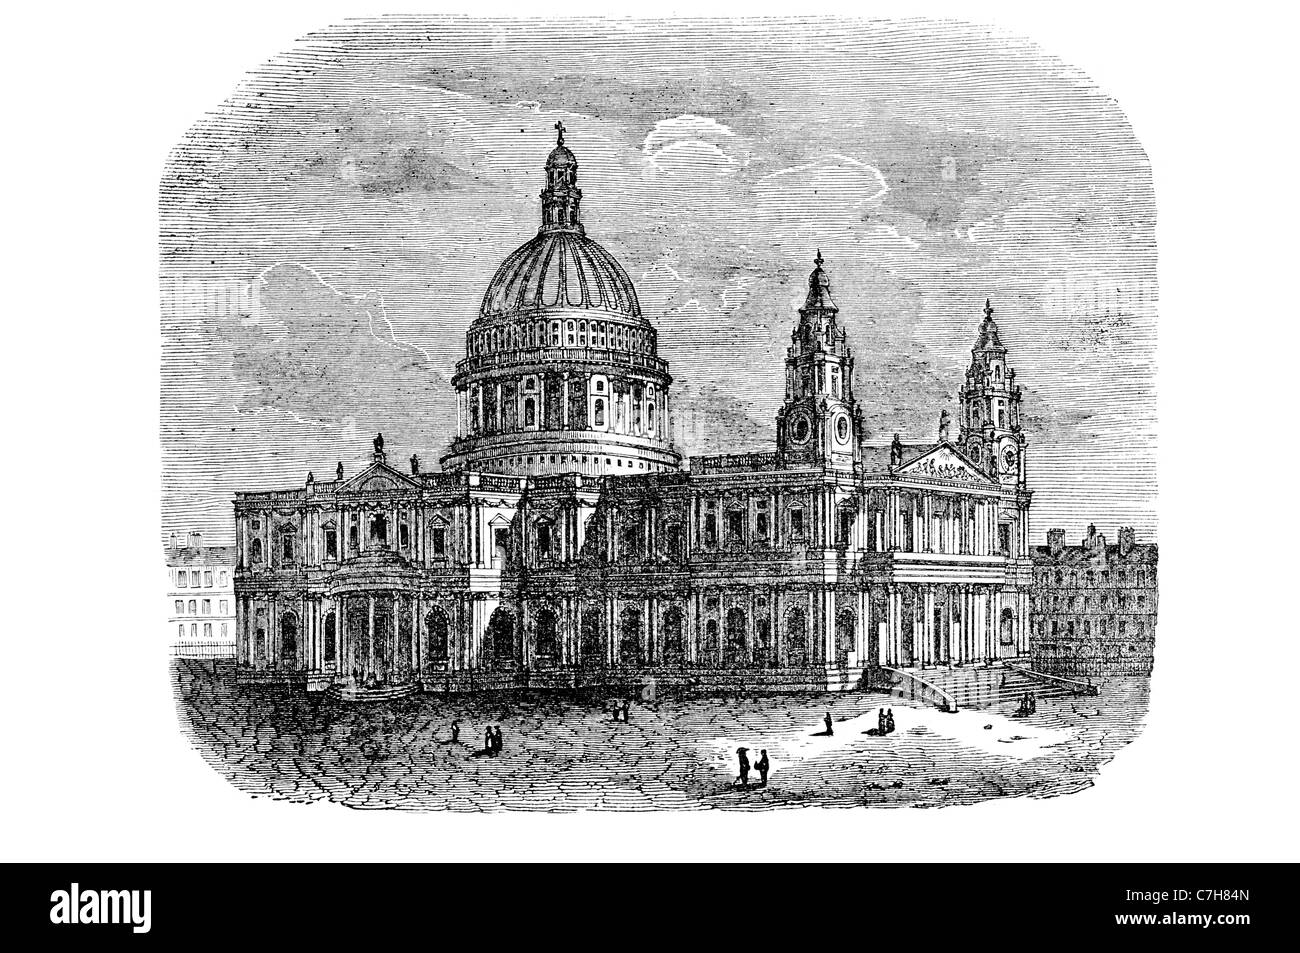 St Paul's Cathedral Church of England religion architecture Paul Apostle Ludgate Hill City London Bishop London - Stock Image